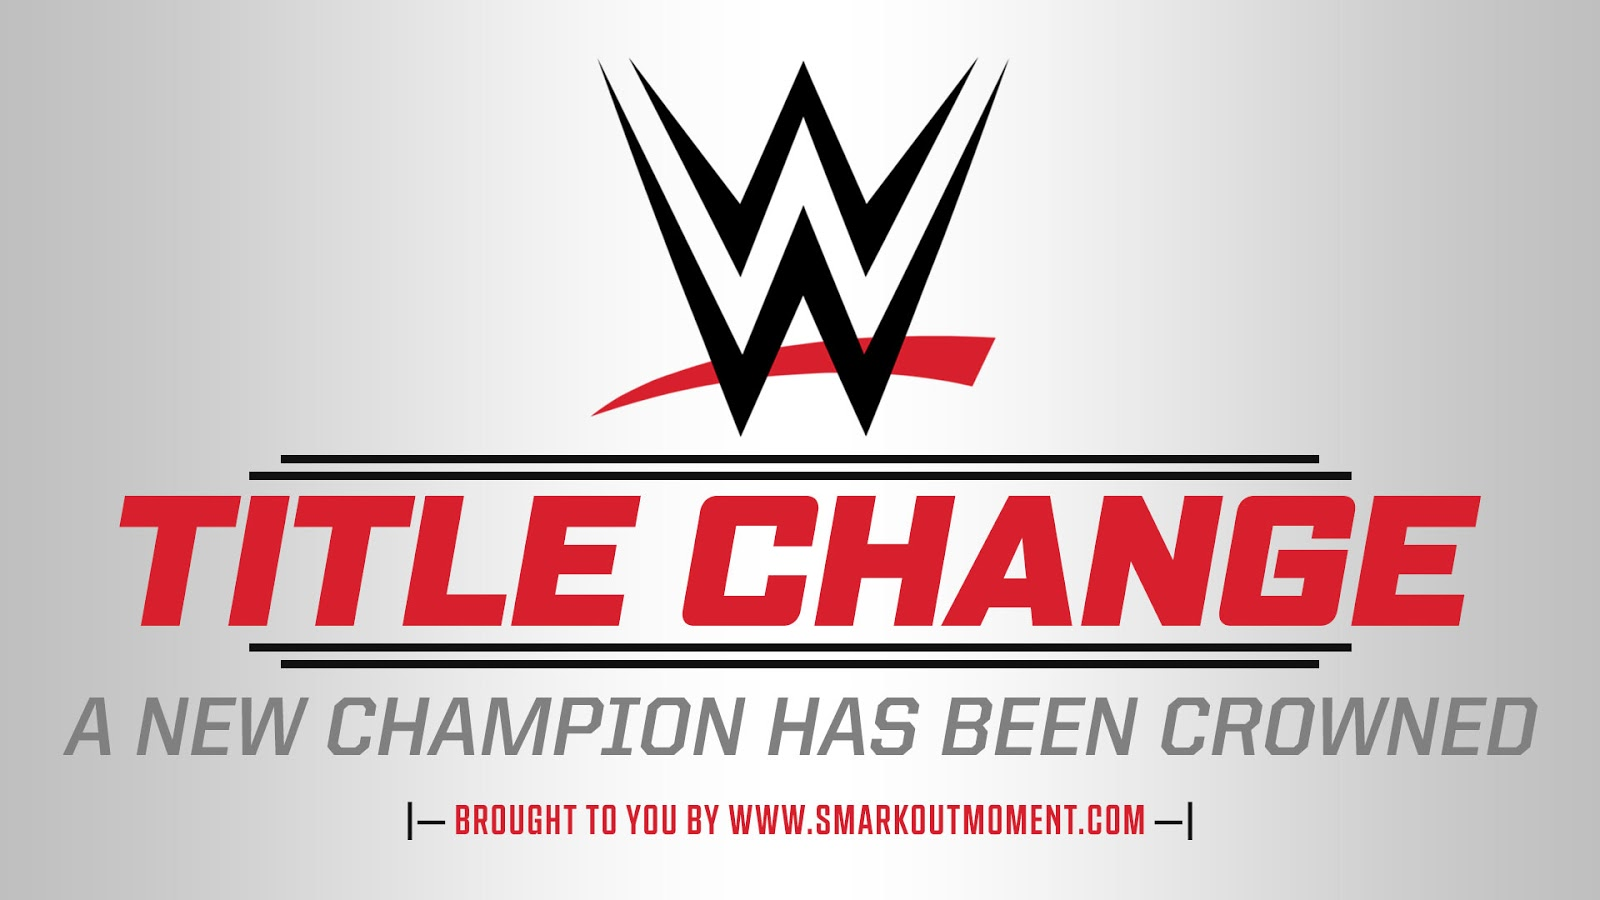 WWE title changes for championsships news reports